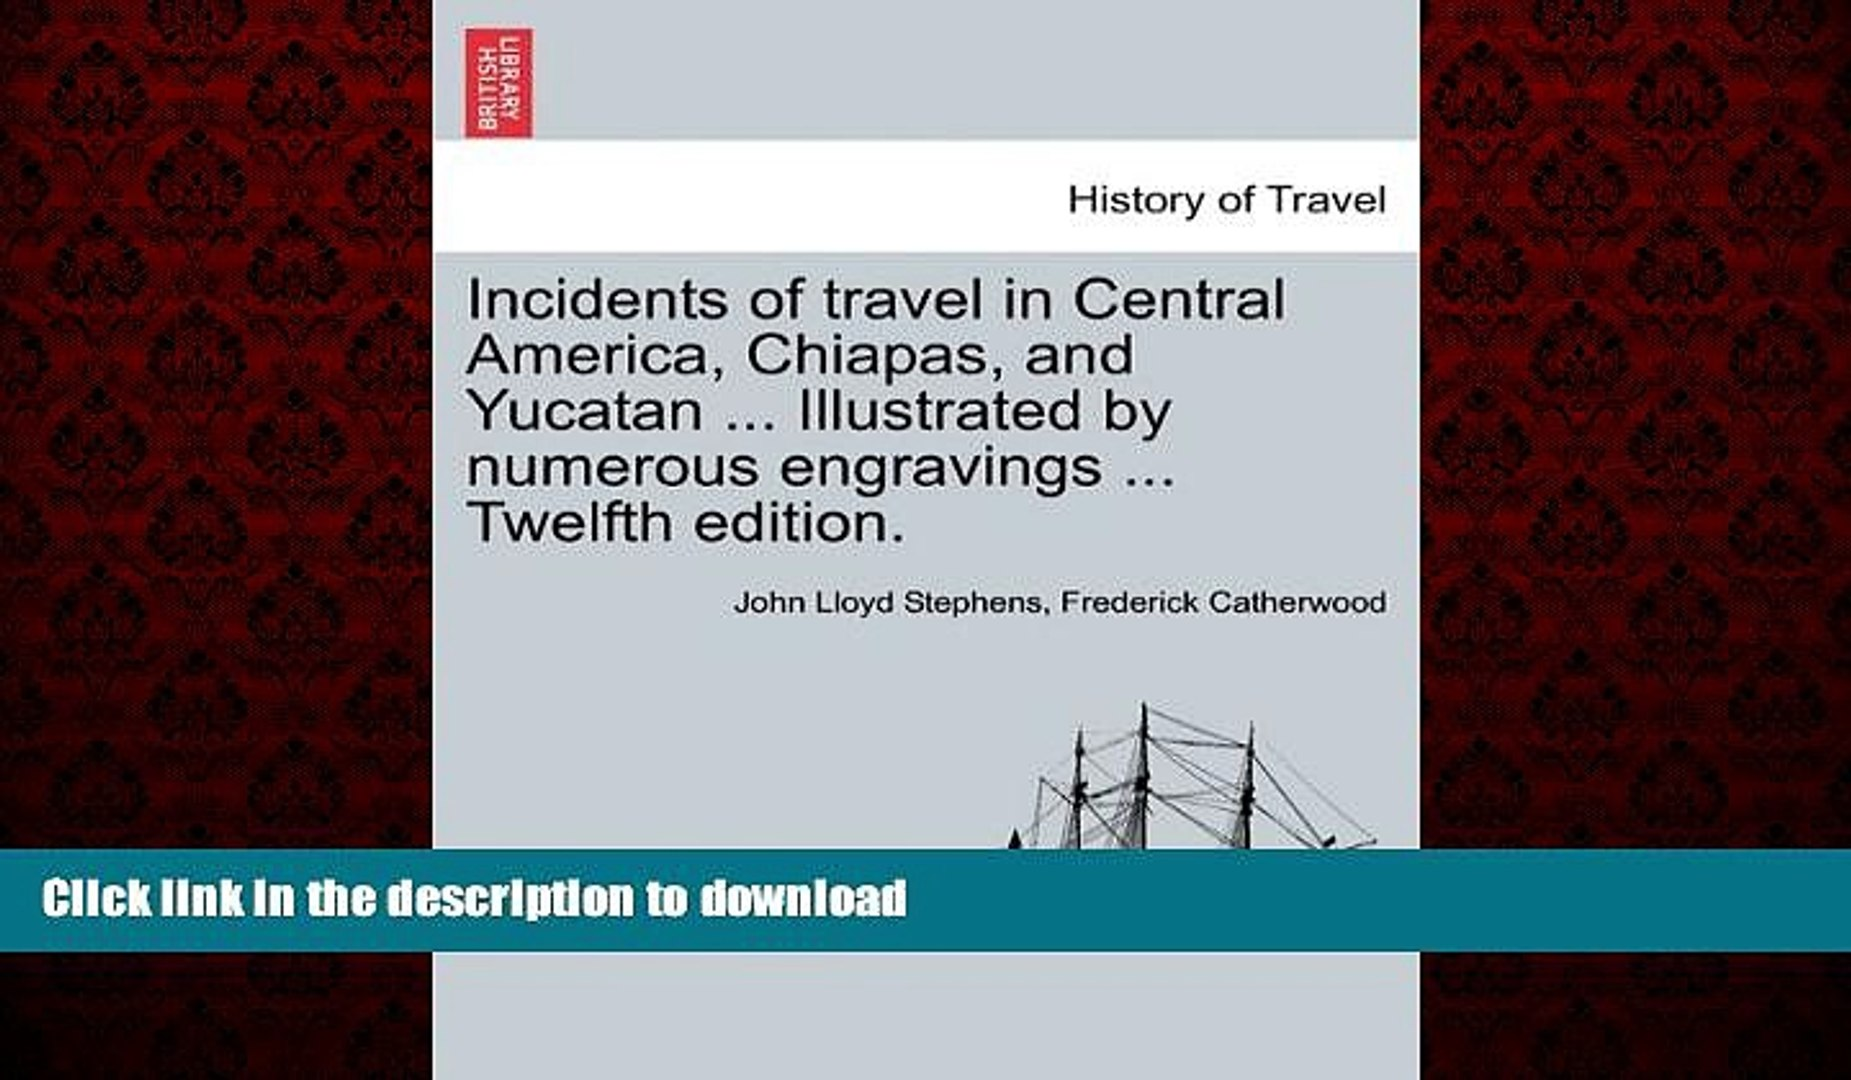 Illustrated by Numerous Engravings .. Chiapas Twelfth Edition. and Yucatan .. Incidents of Travel in Central America